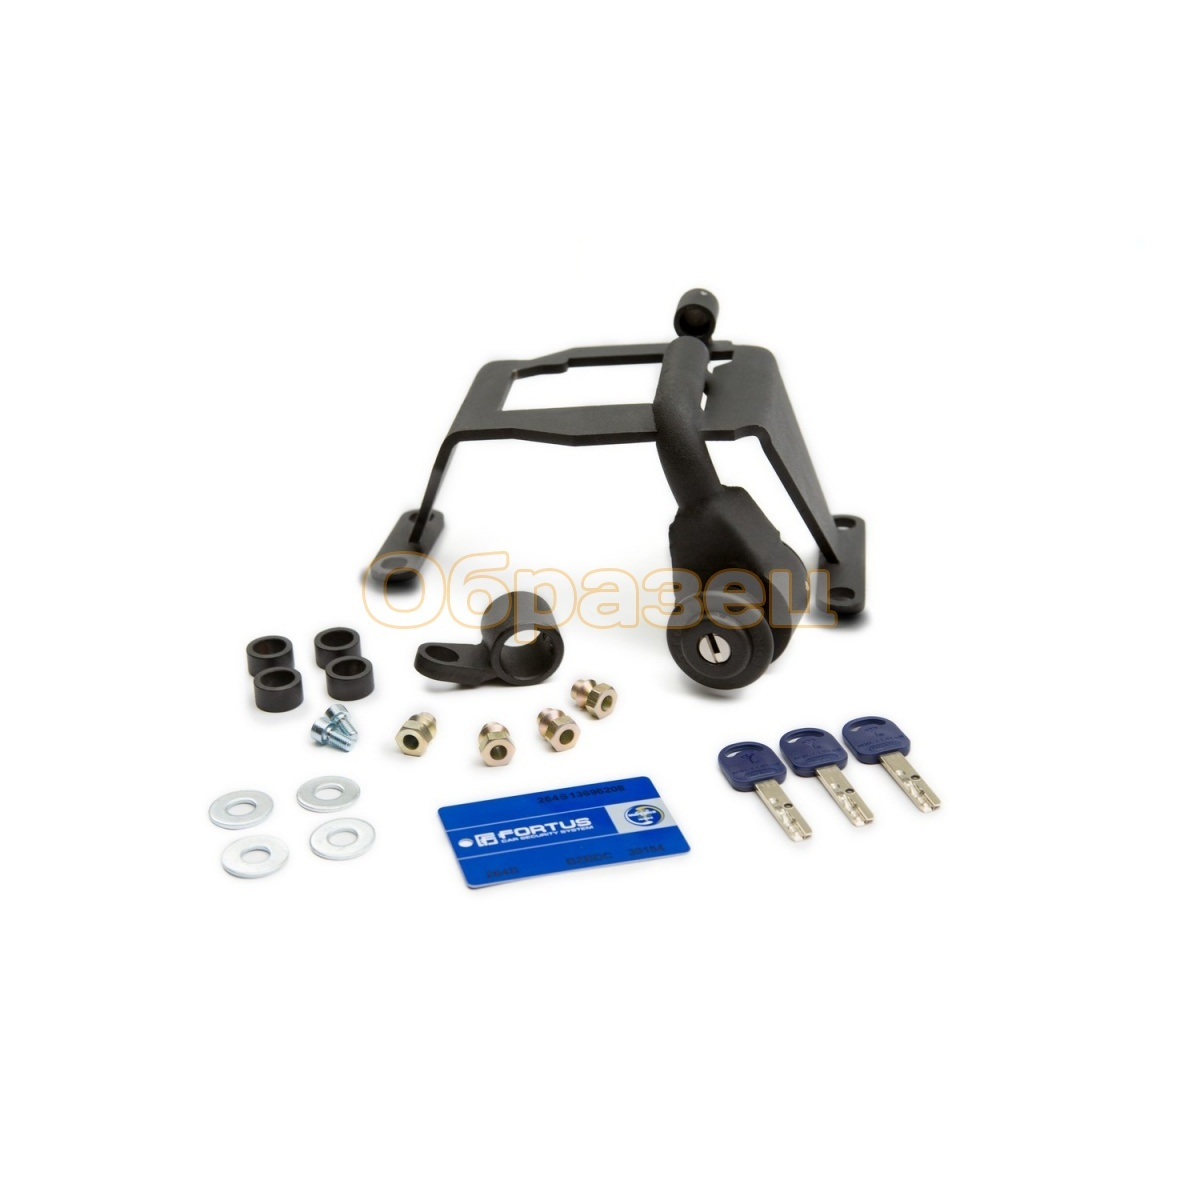 Gearbox lock (MTL) 2604 INT for Lada Xray  2016  at + (x ray) Car Steering Wheel Lock     - title=